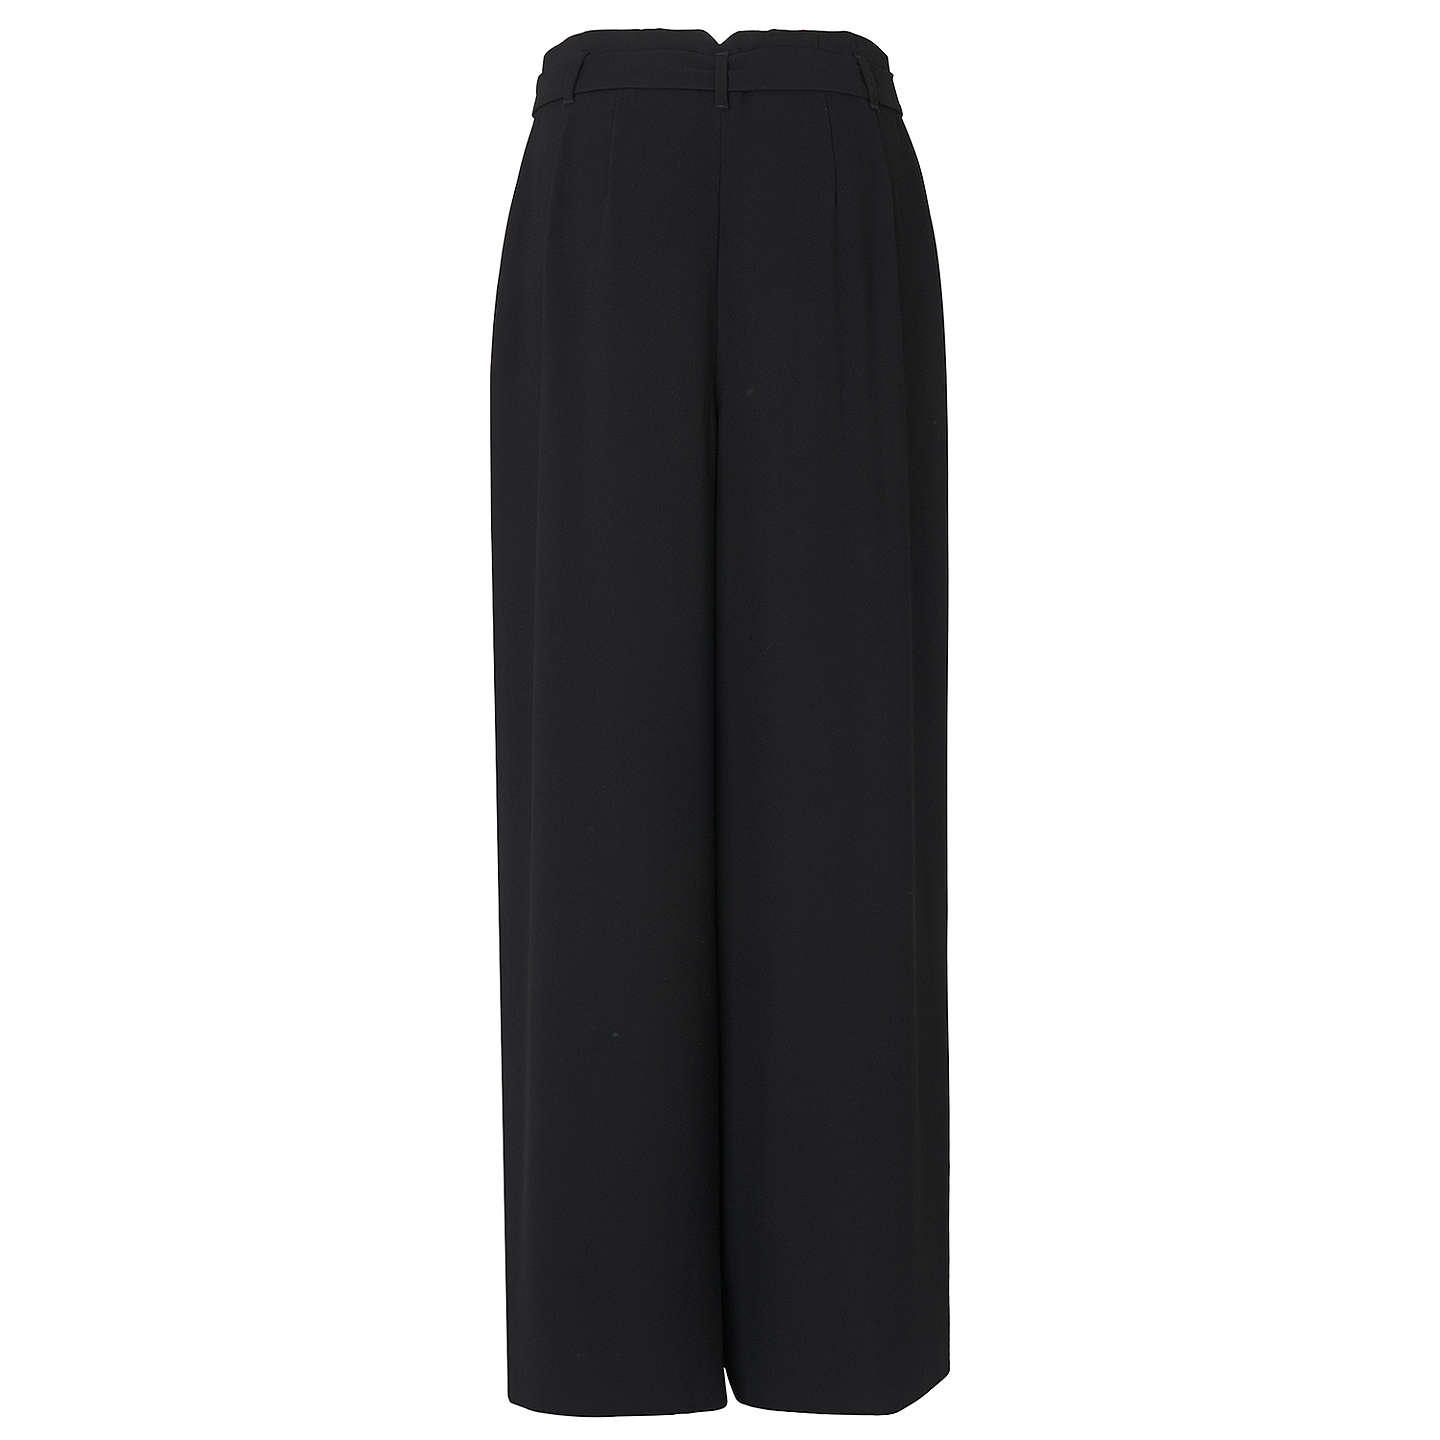 BuyL.K.Bennett Cora Trousers, Black, 6 Online at johnlewis.com